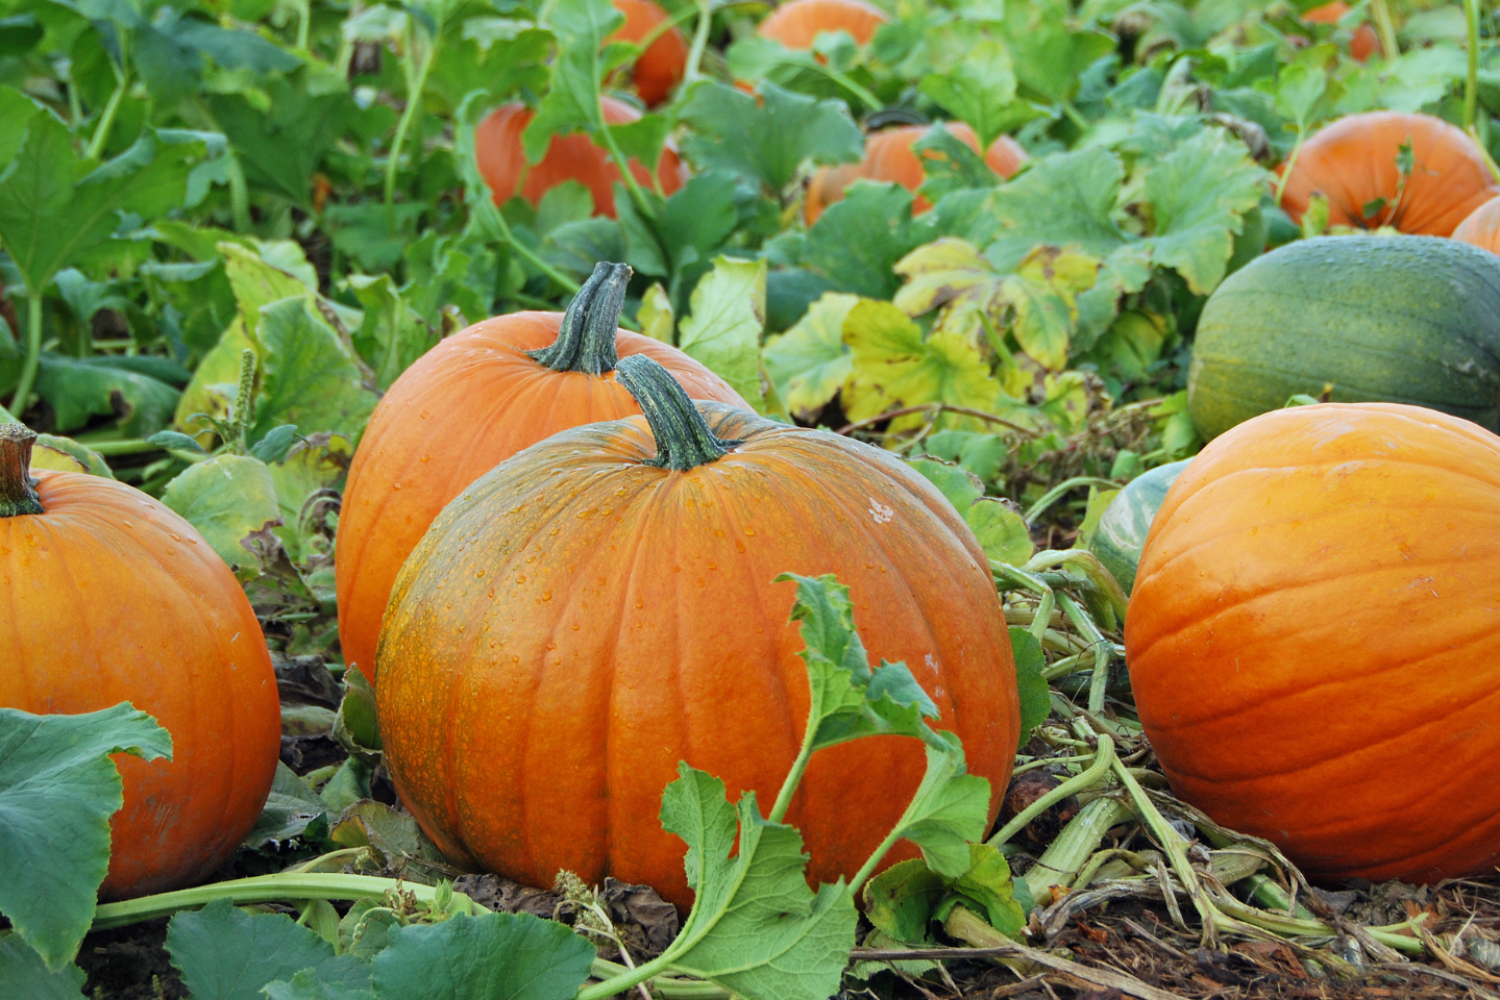 Rogue valley U-pick farms, agriculture in the rogue valley, things to do in Medford, fall fun, support local farmers, support local buisinesses, u pick, farming, pumpkins